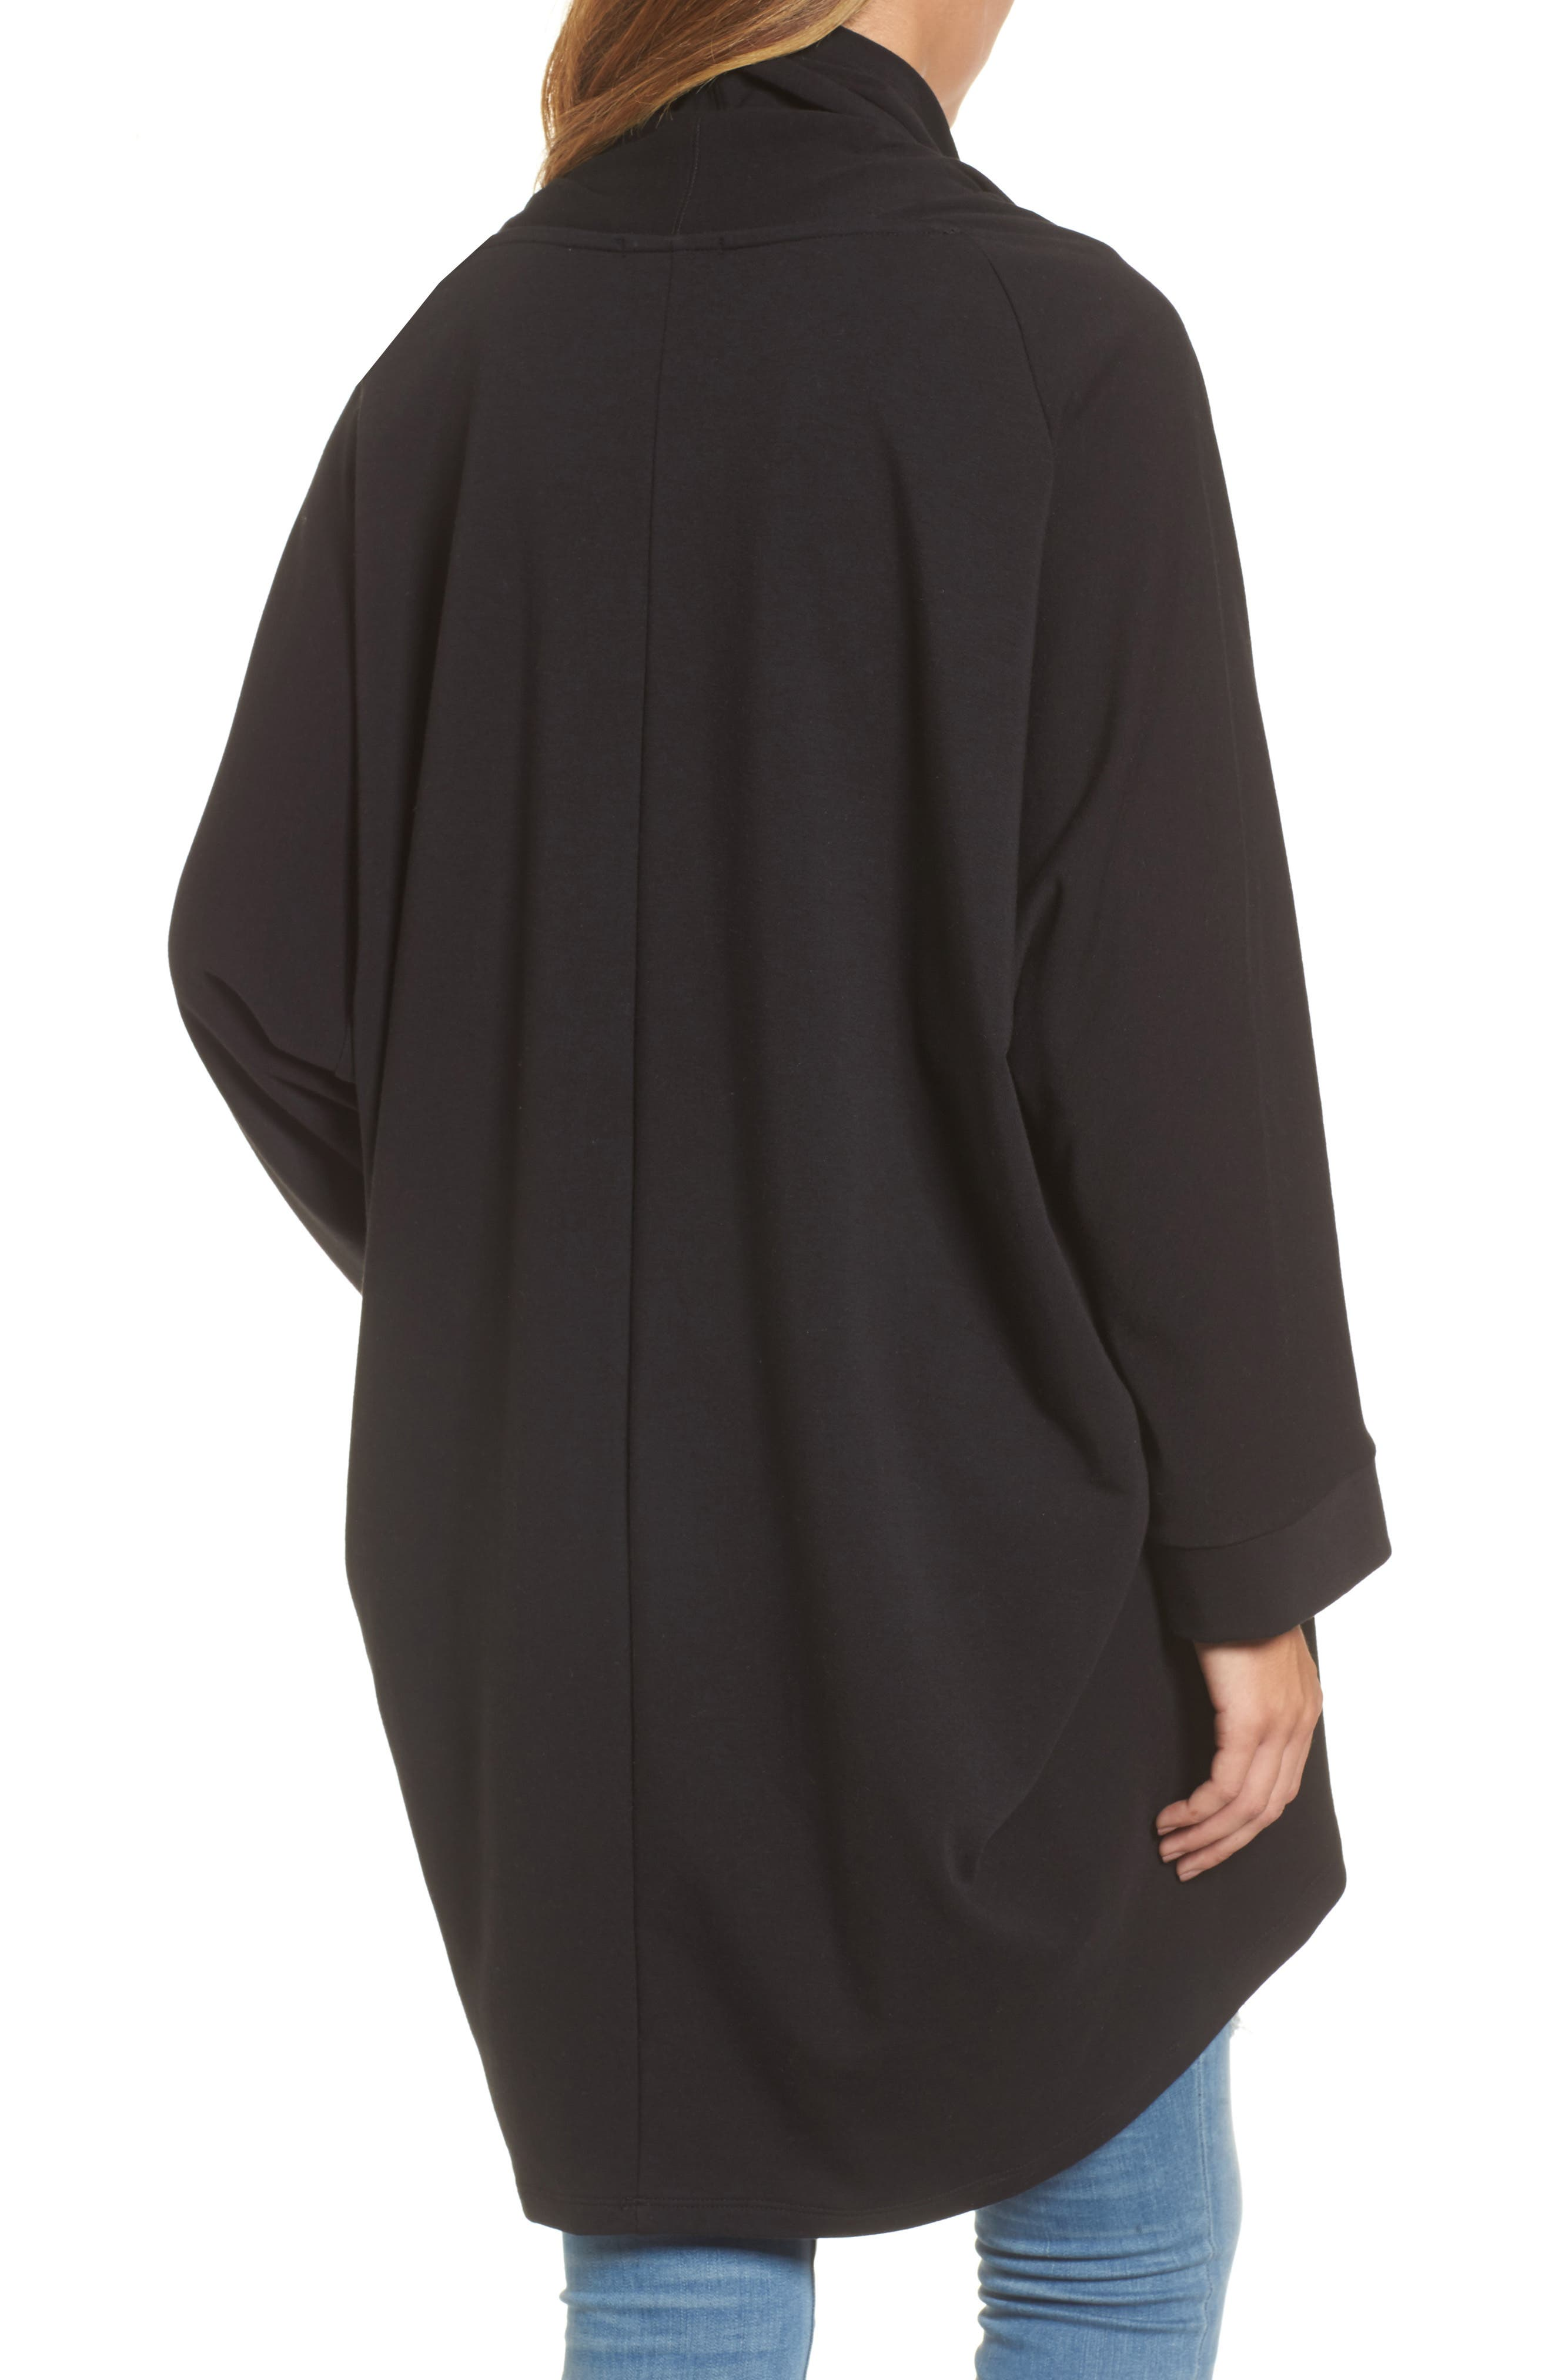 Cocoon Knit Midi Cardigan,                             Alternate thumbnail 2, color,                             Black